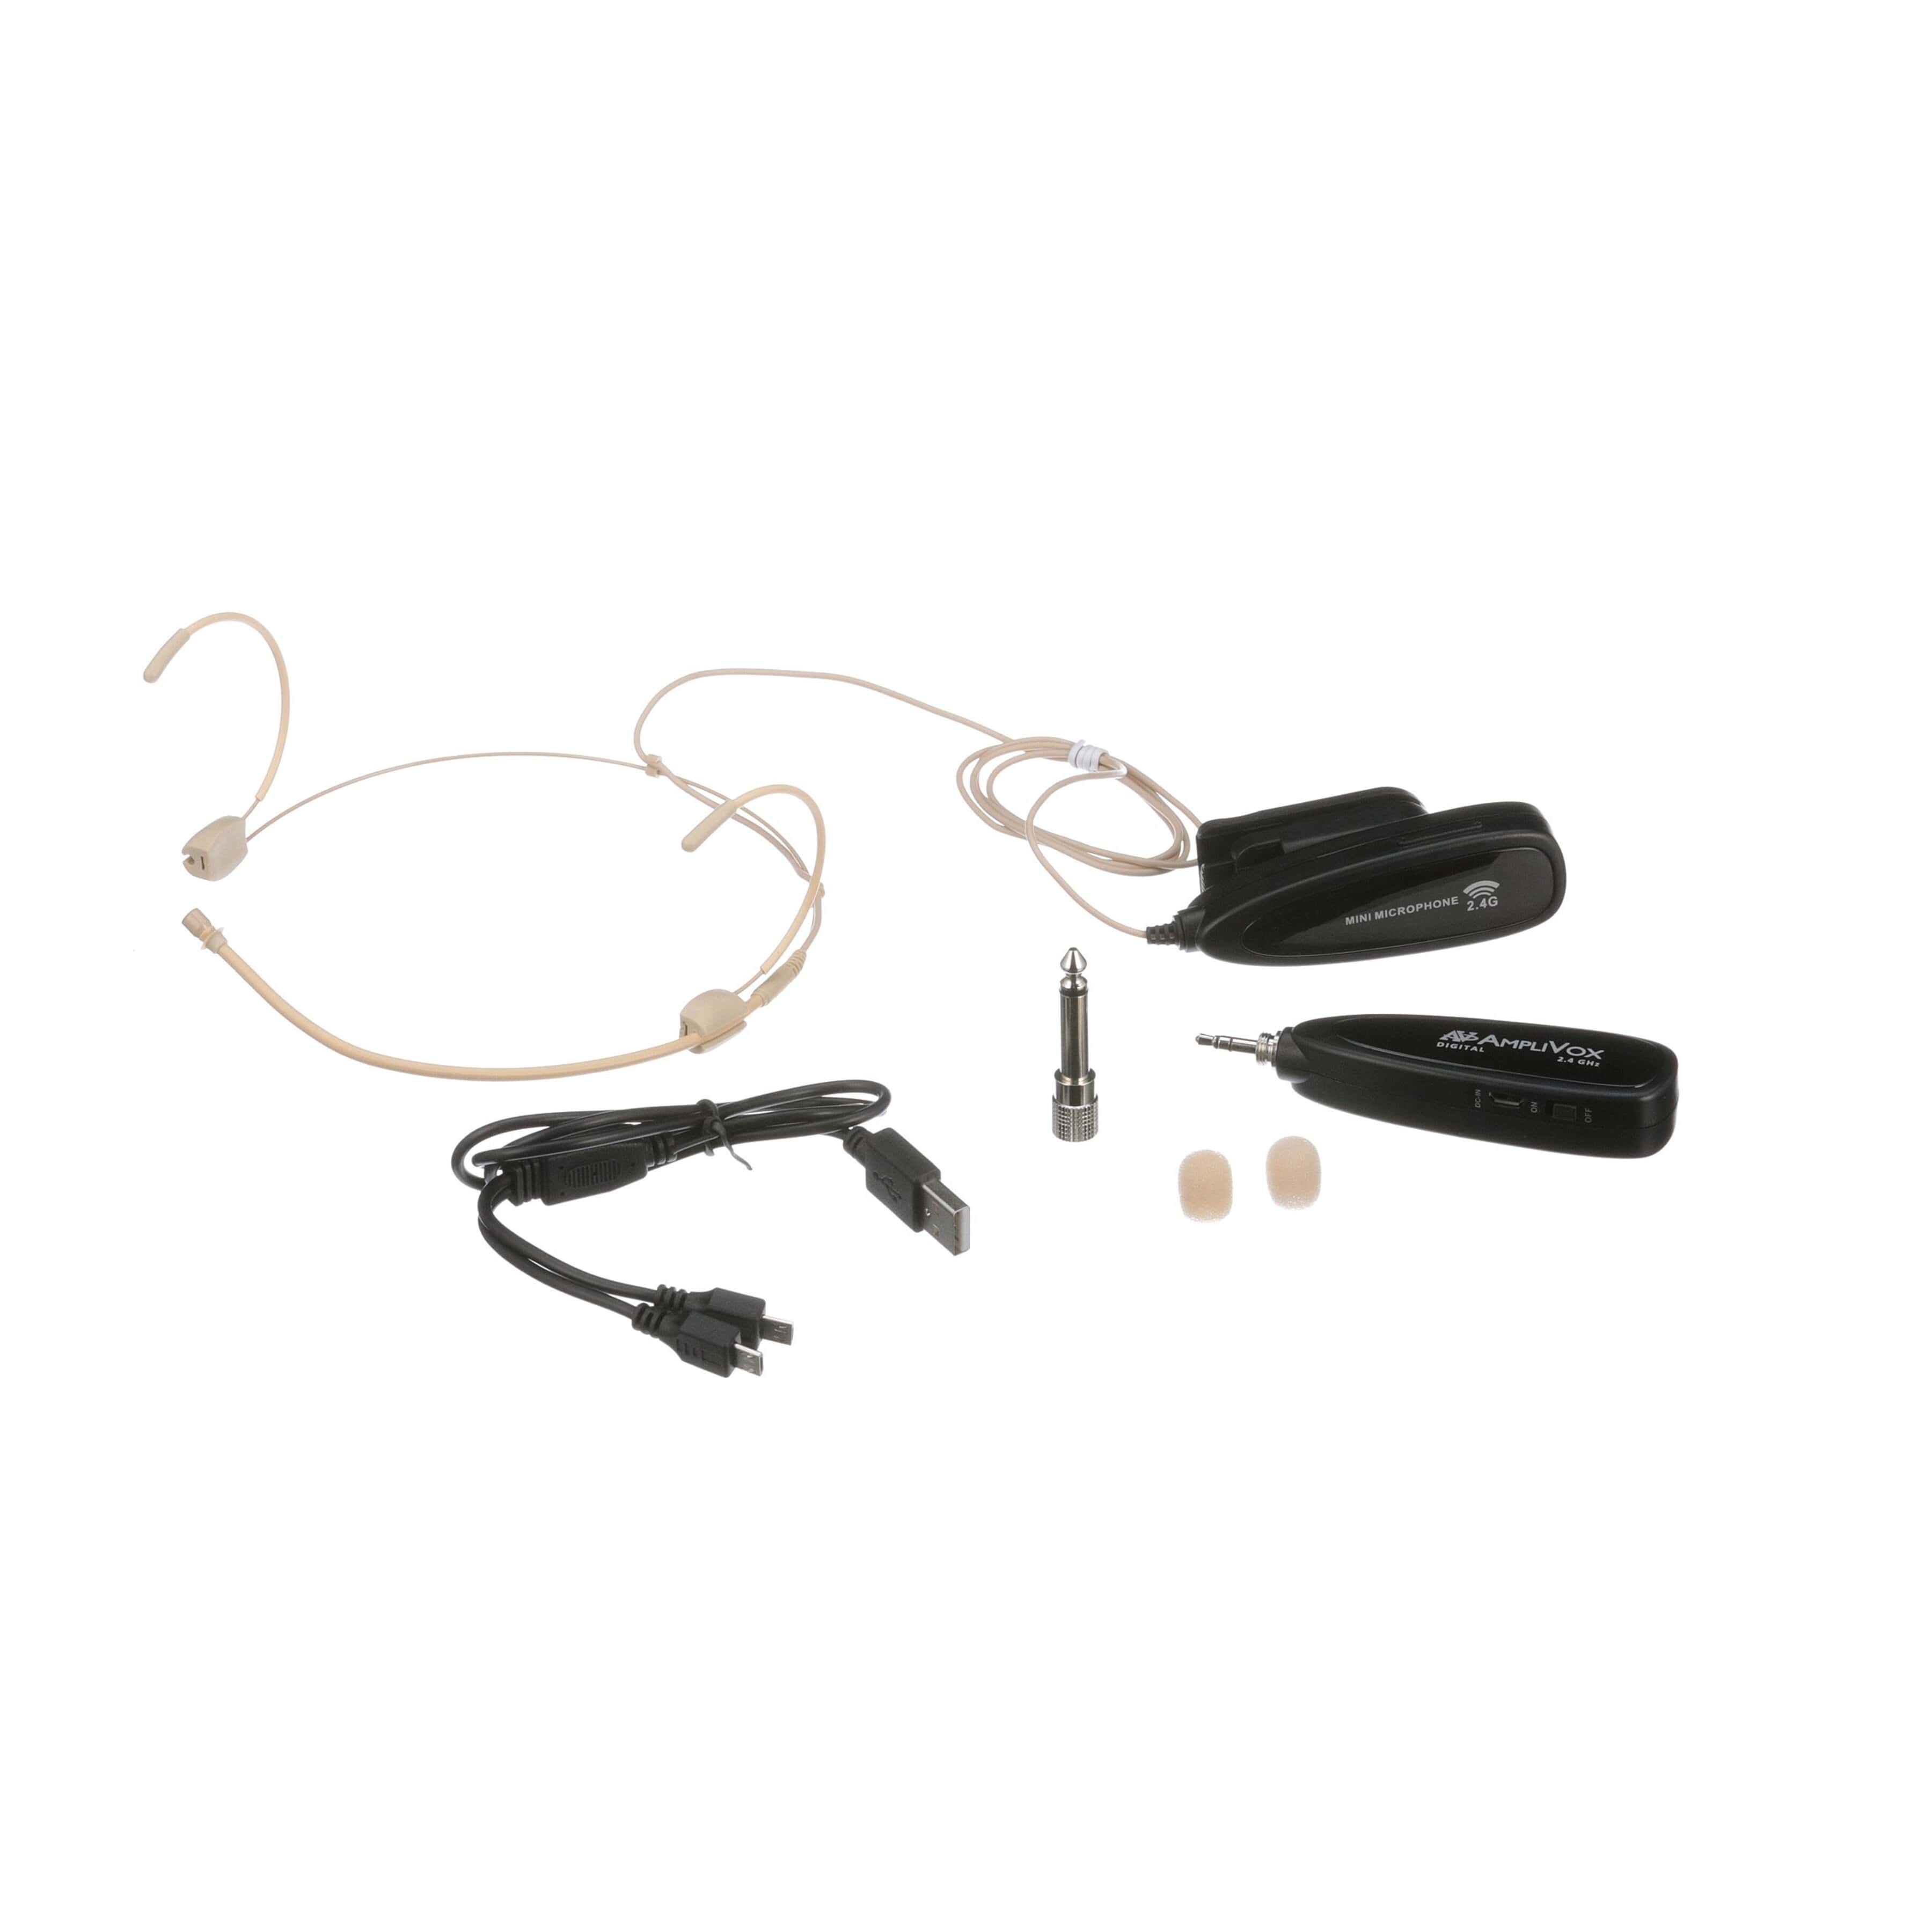 Classroom Audio System With Wireless Microphone Usb Headset Wiring Diagram